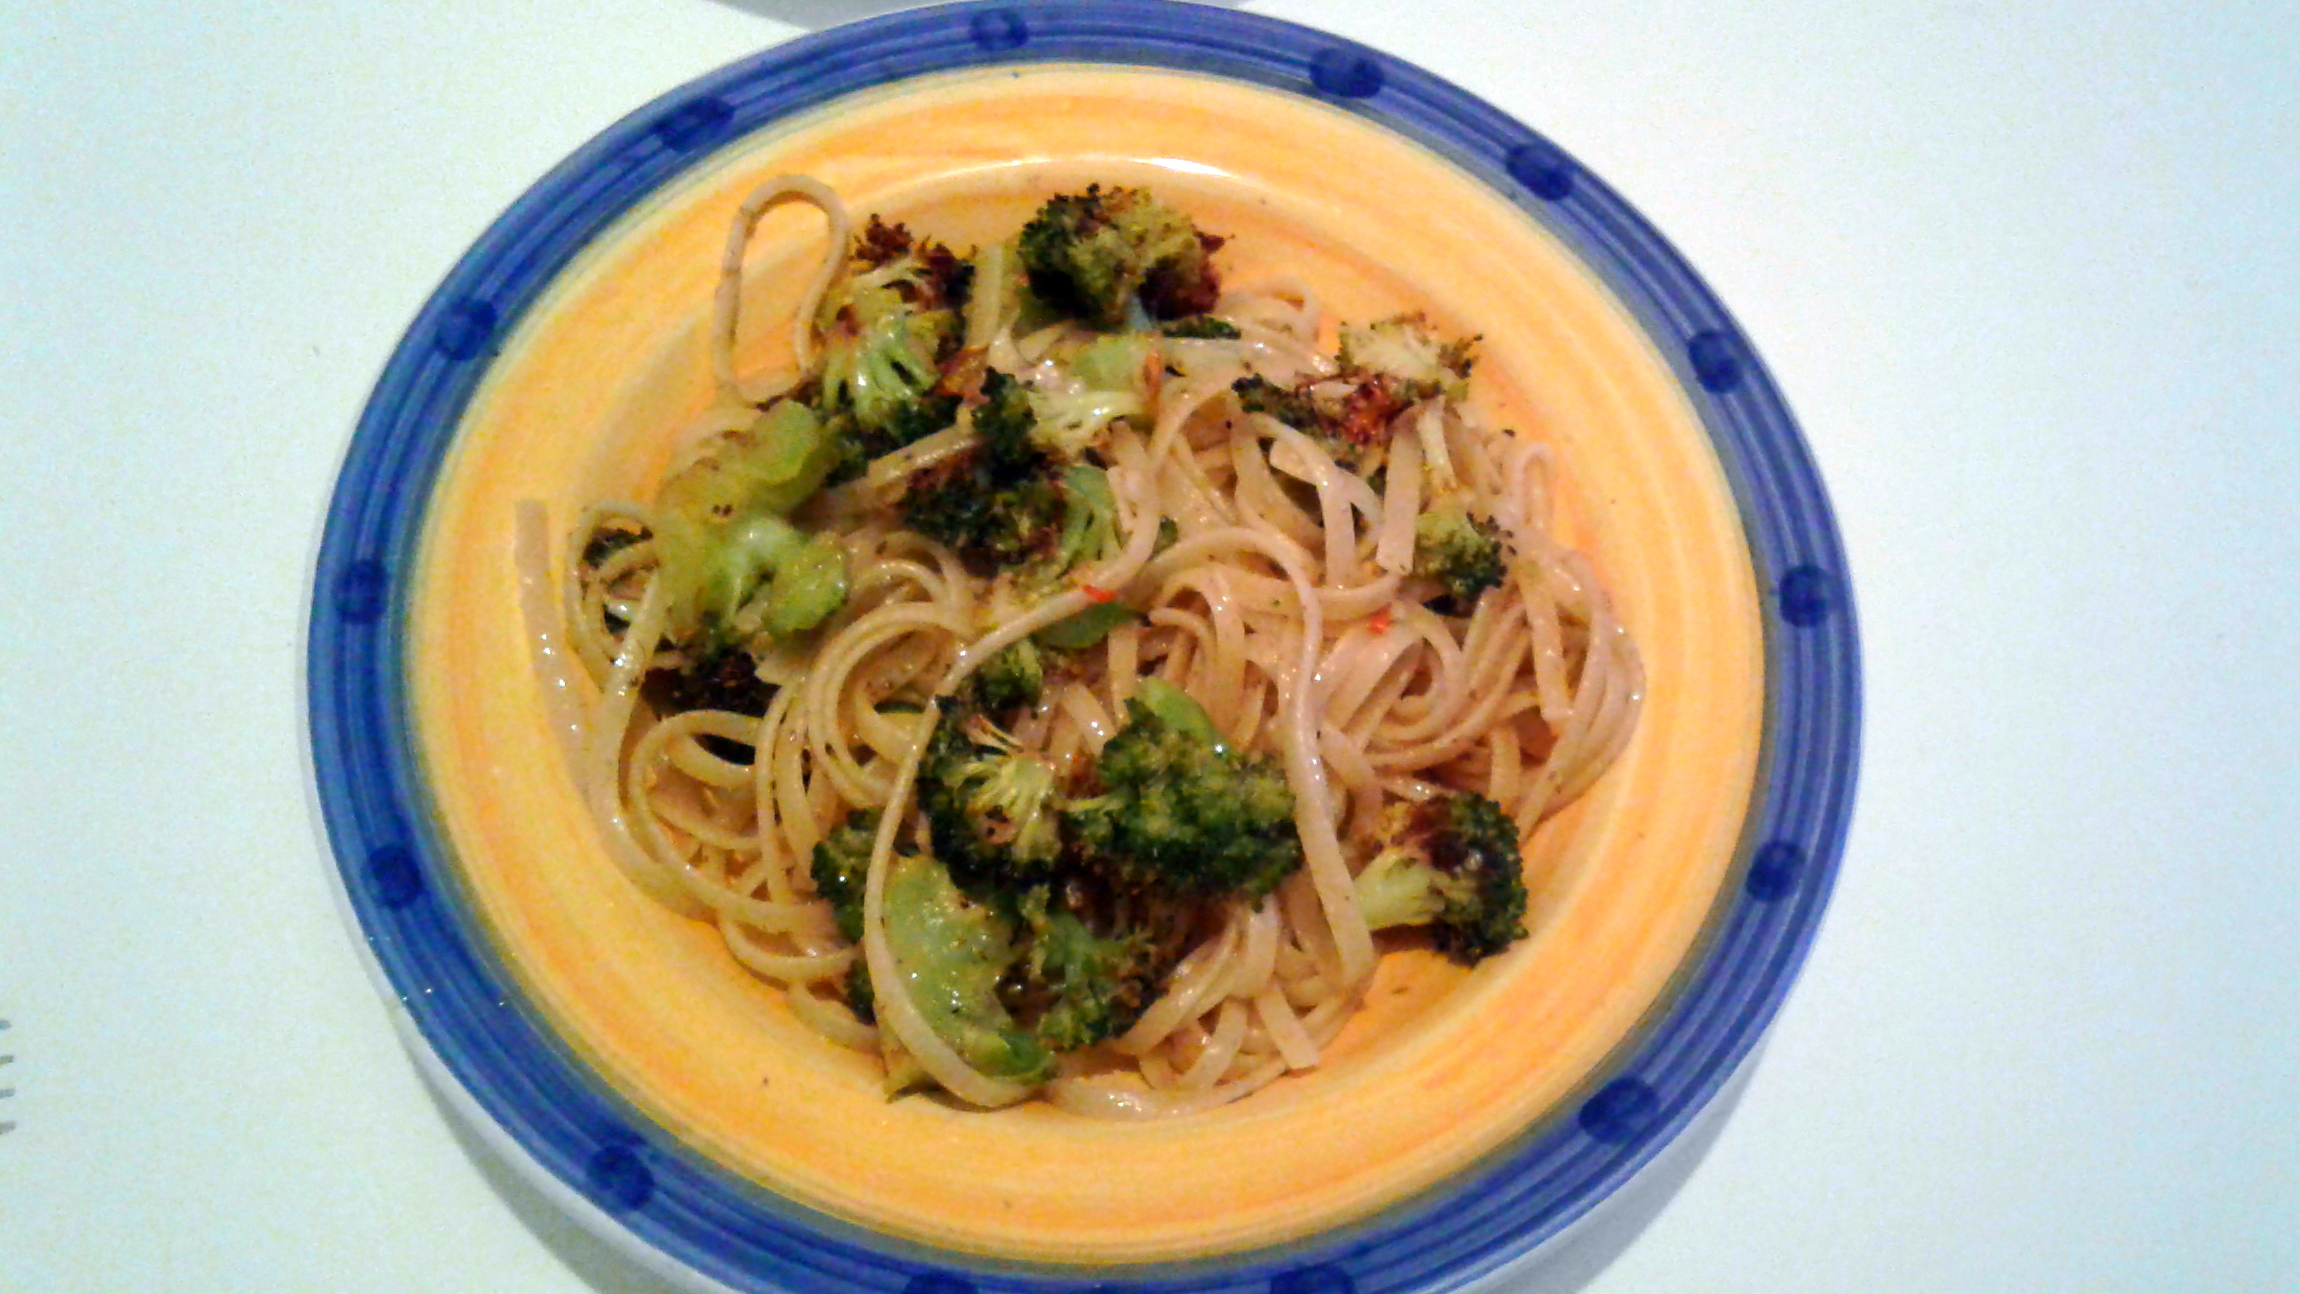 Spicy Pasta with Broccoli, Anchovy, and Garlic Stephen Van Houten